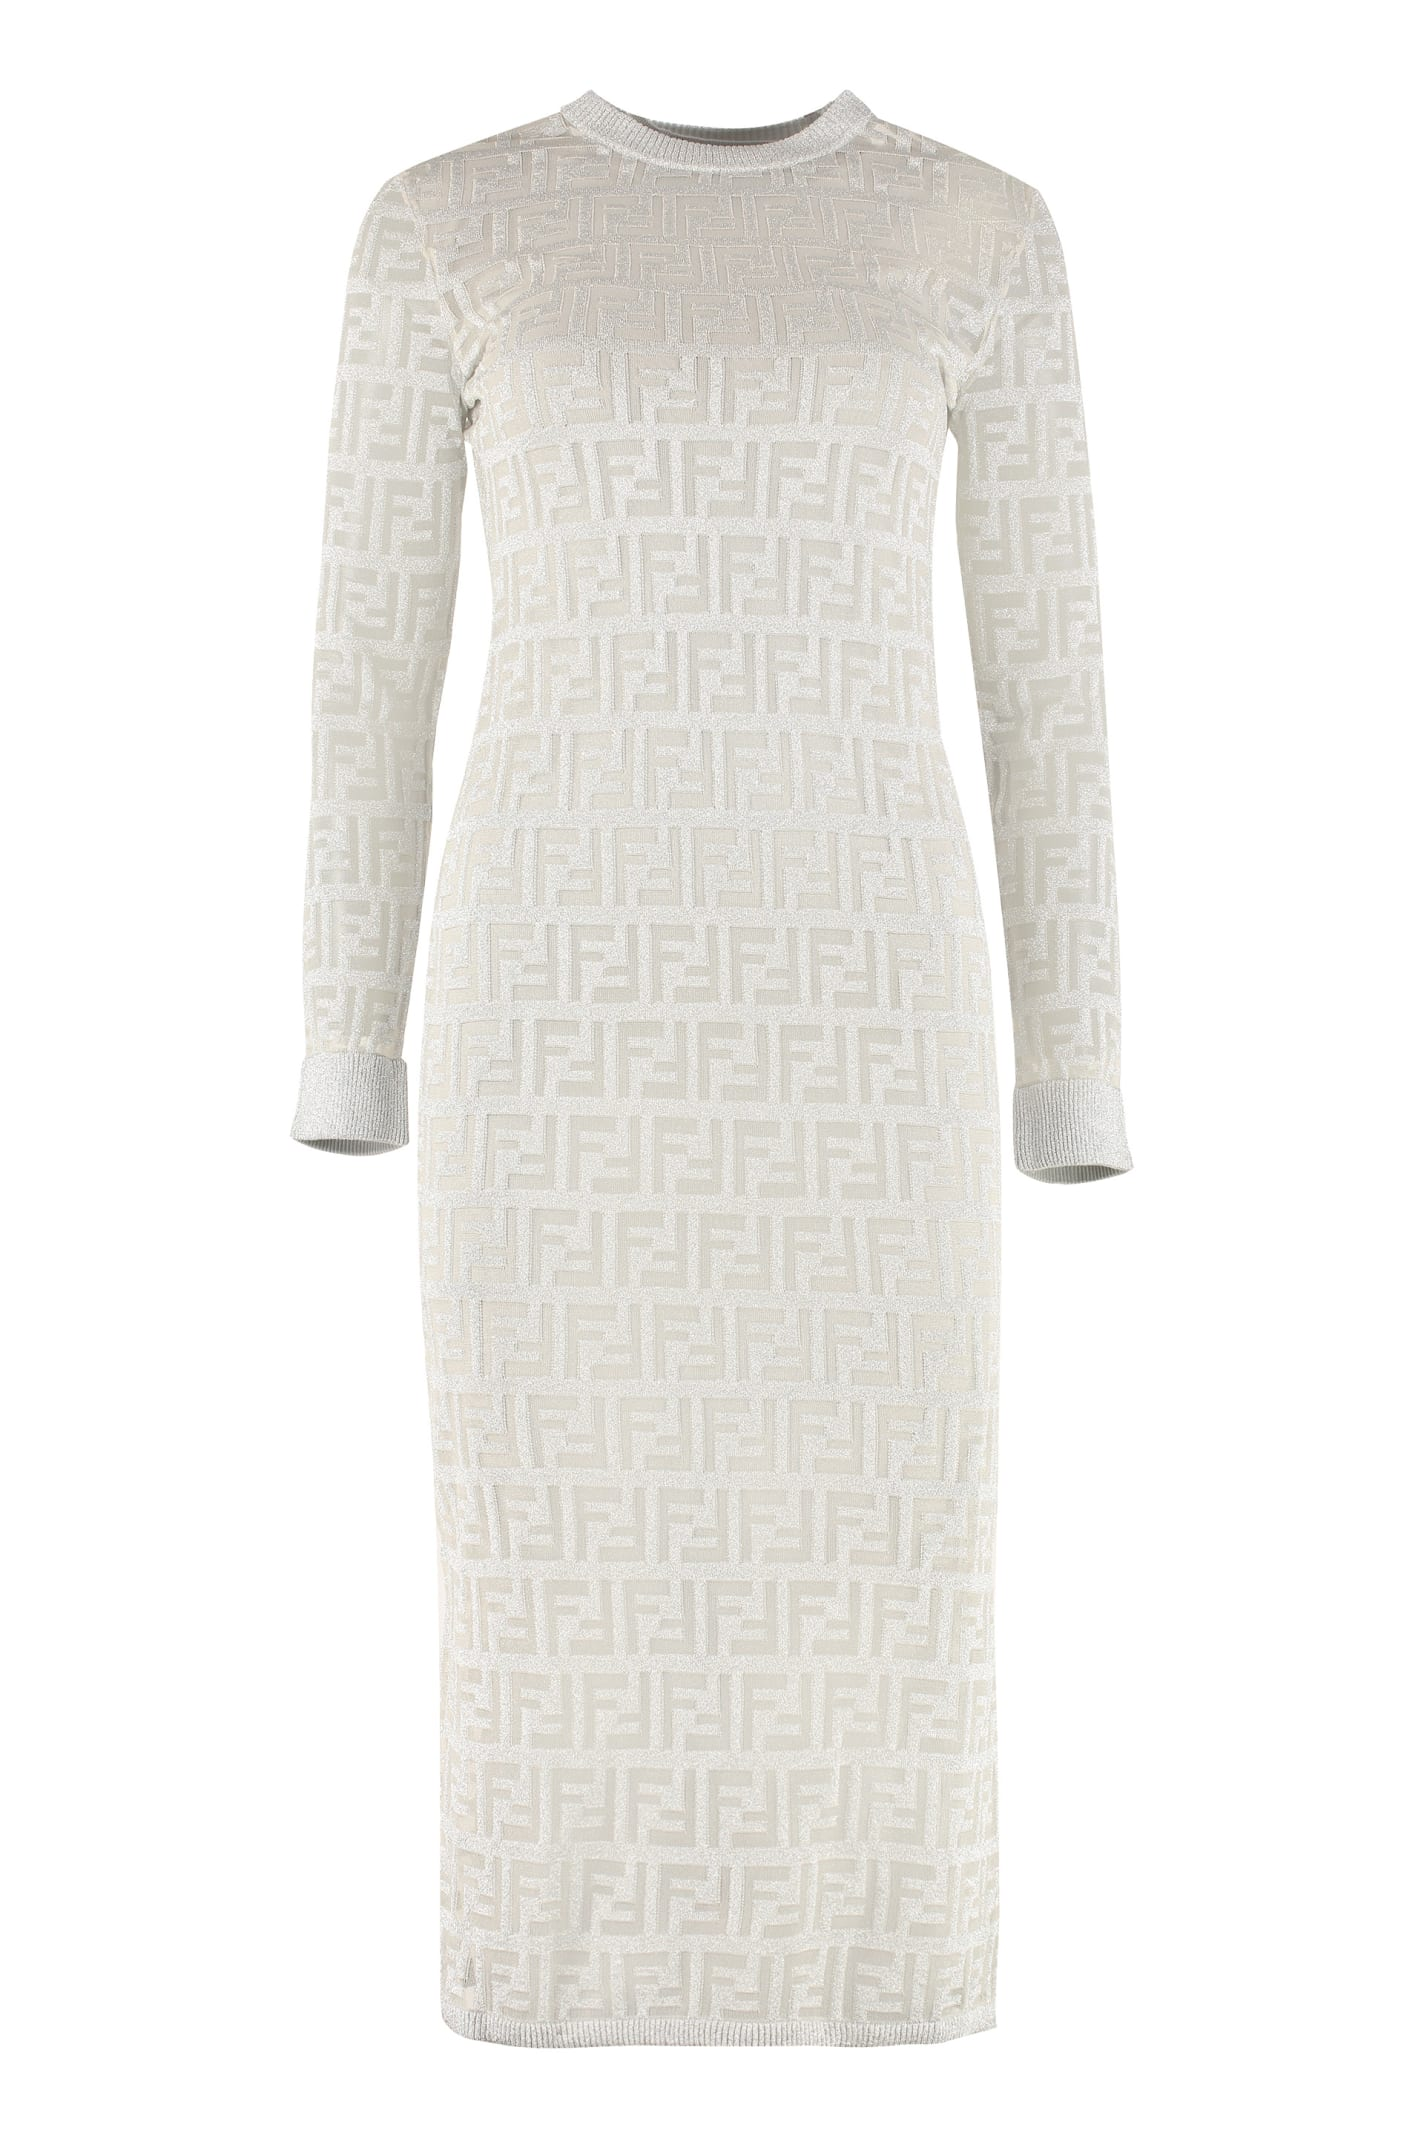 Buy Fendi Lurex Knit Dress online, shop Fendi with free shipping